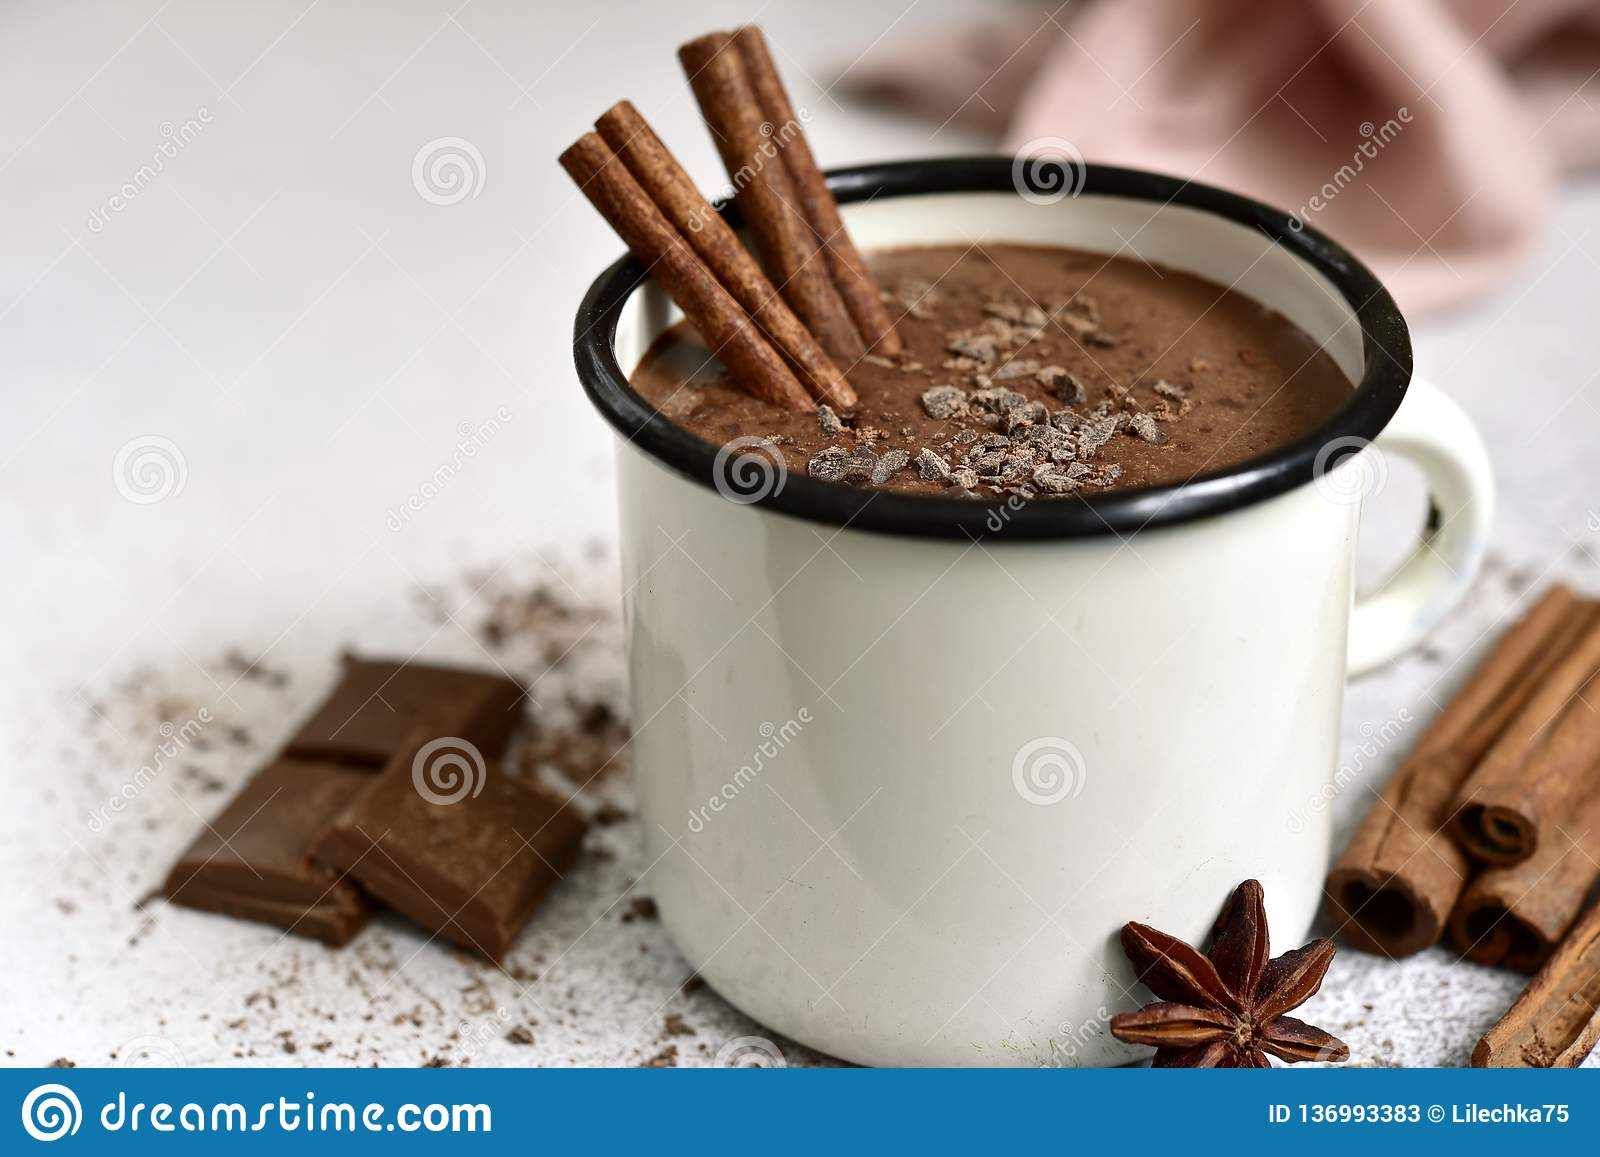 Homemade hot chocolate in a white enamel mug. On a light slate, stone or concrete background stock photos